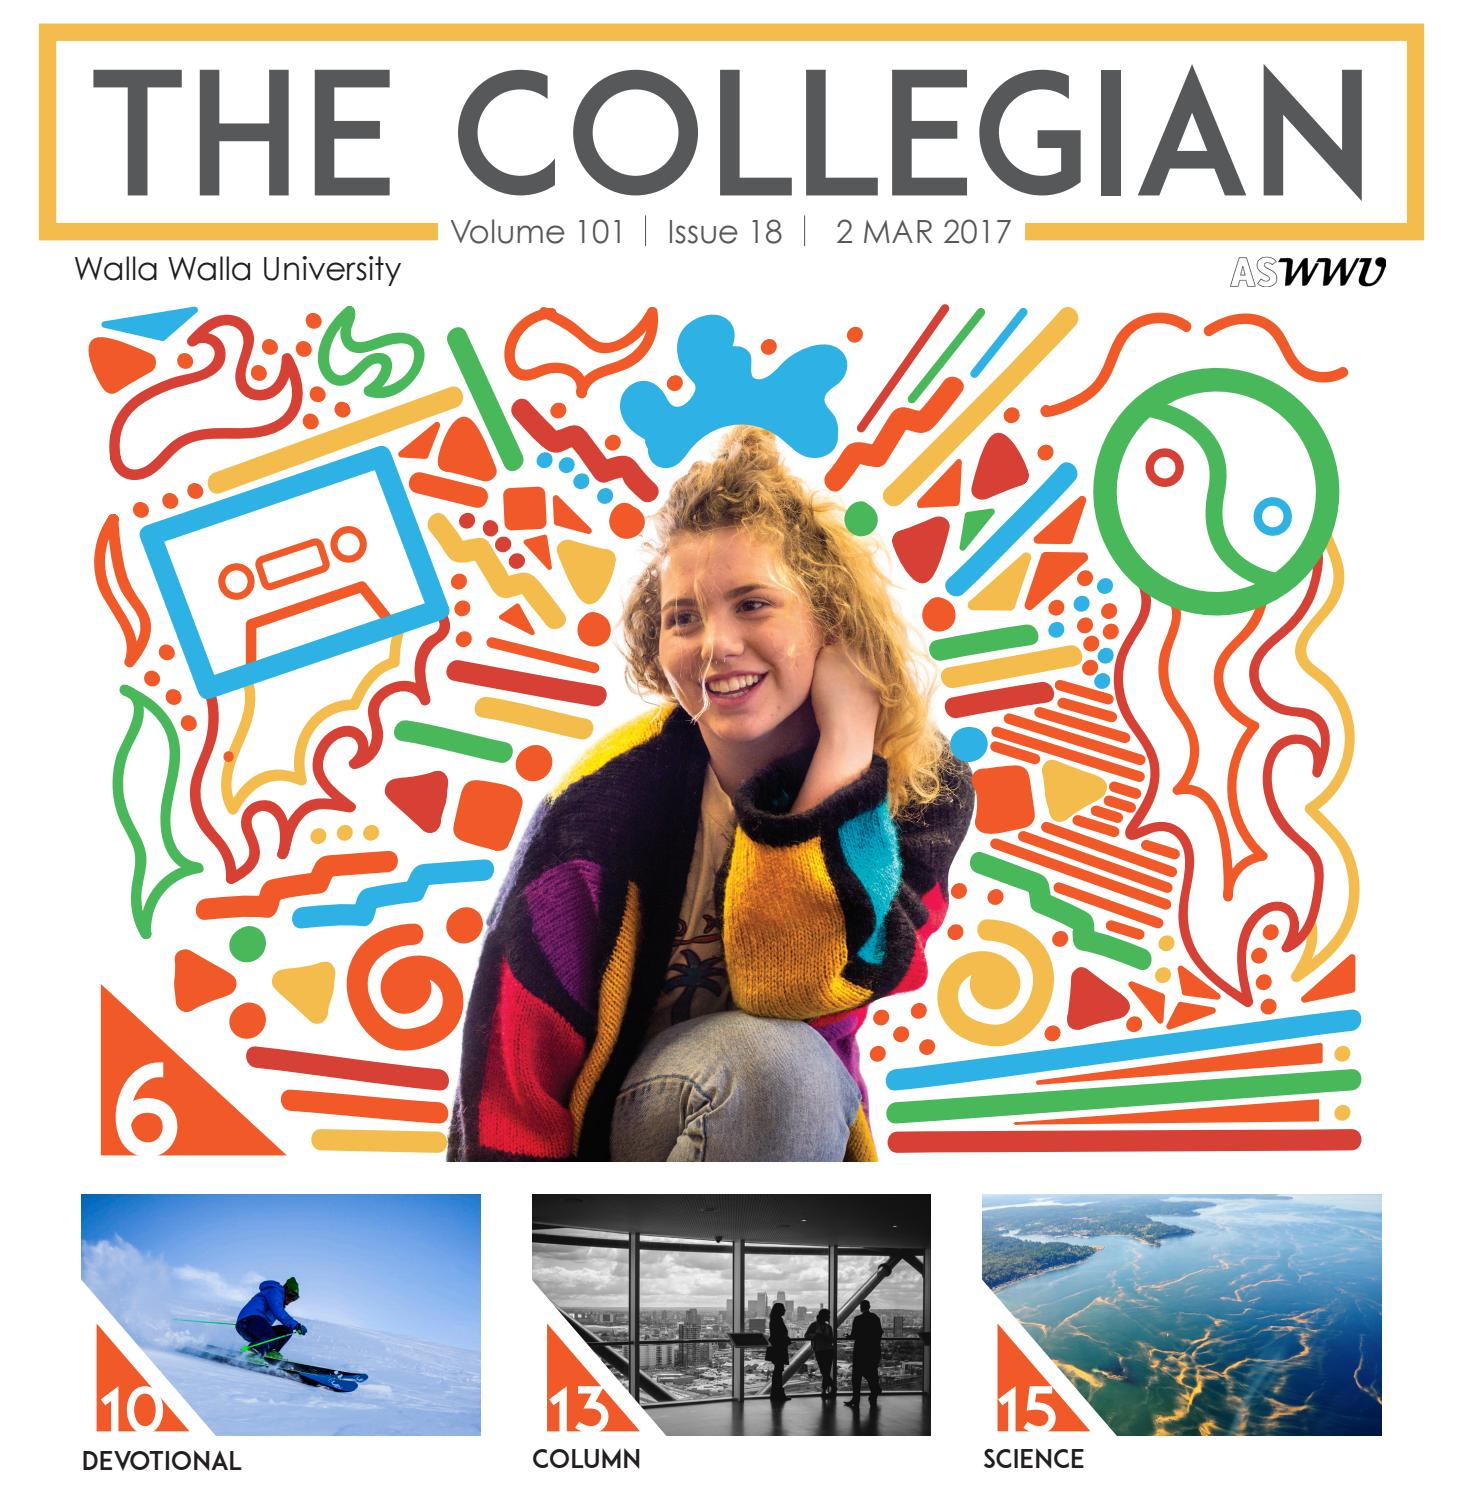 Volume 101 Issue 18 by The Collegian - issuu